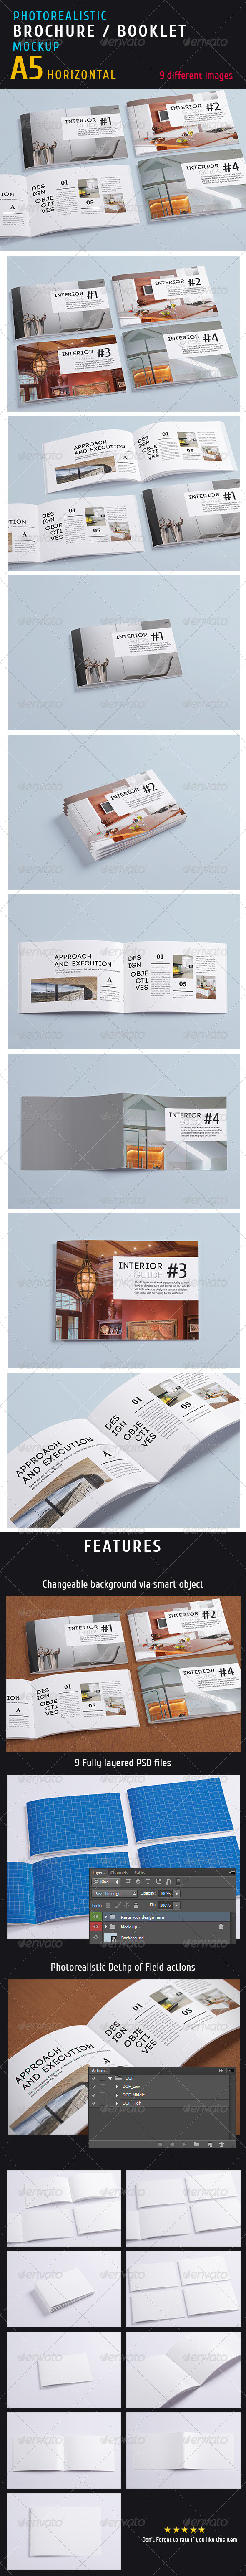 GraphicRiver Photorealistic a5 Horizontal Magazine Mock-up 5397657